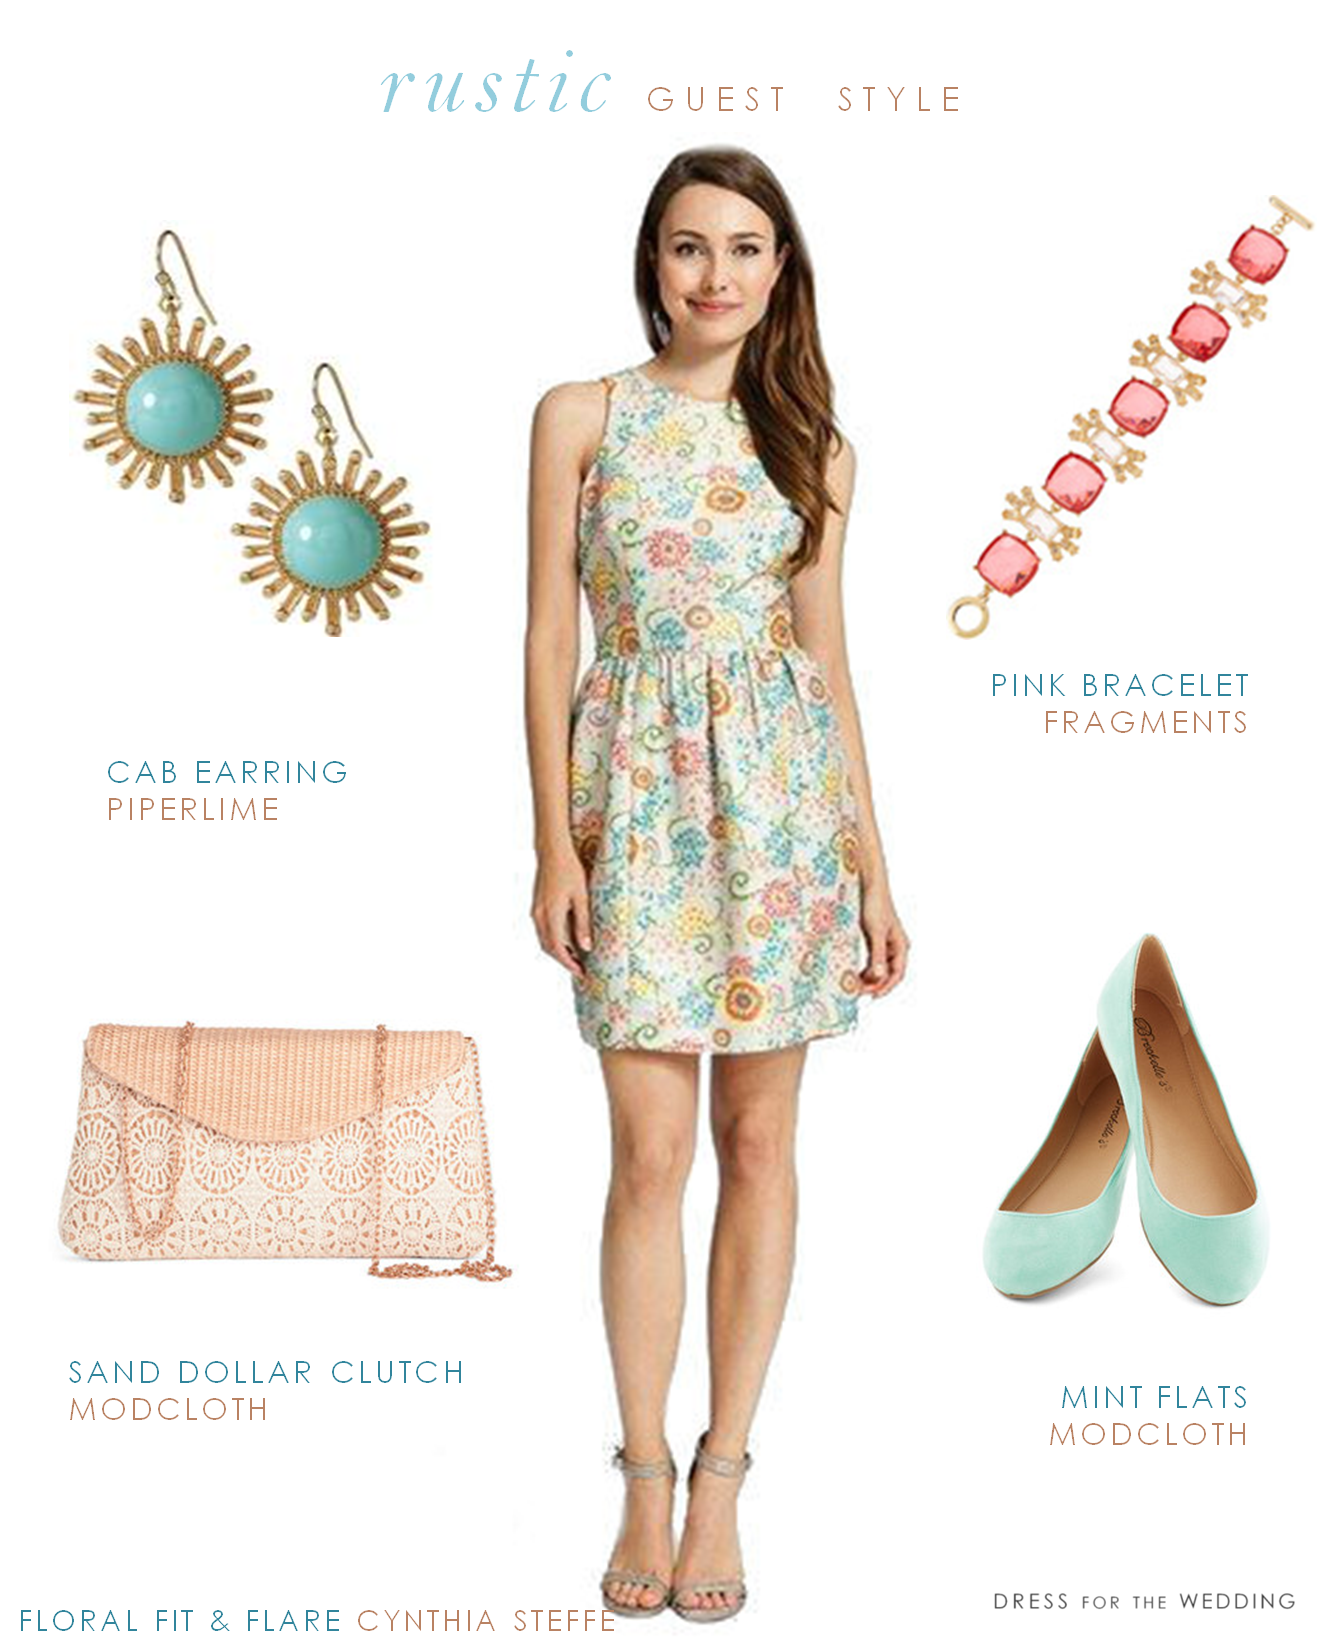 cute wedding guest dresses What Should a Guest Wear to a Rustic Wedding